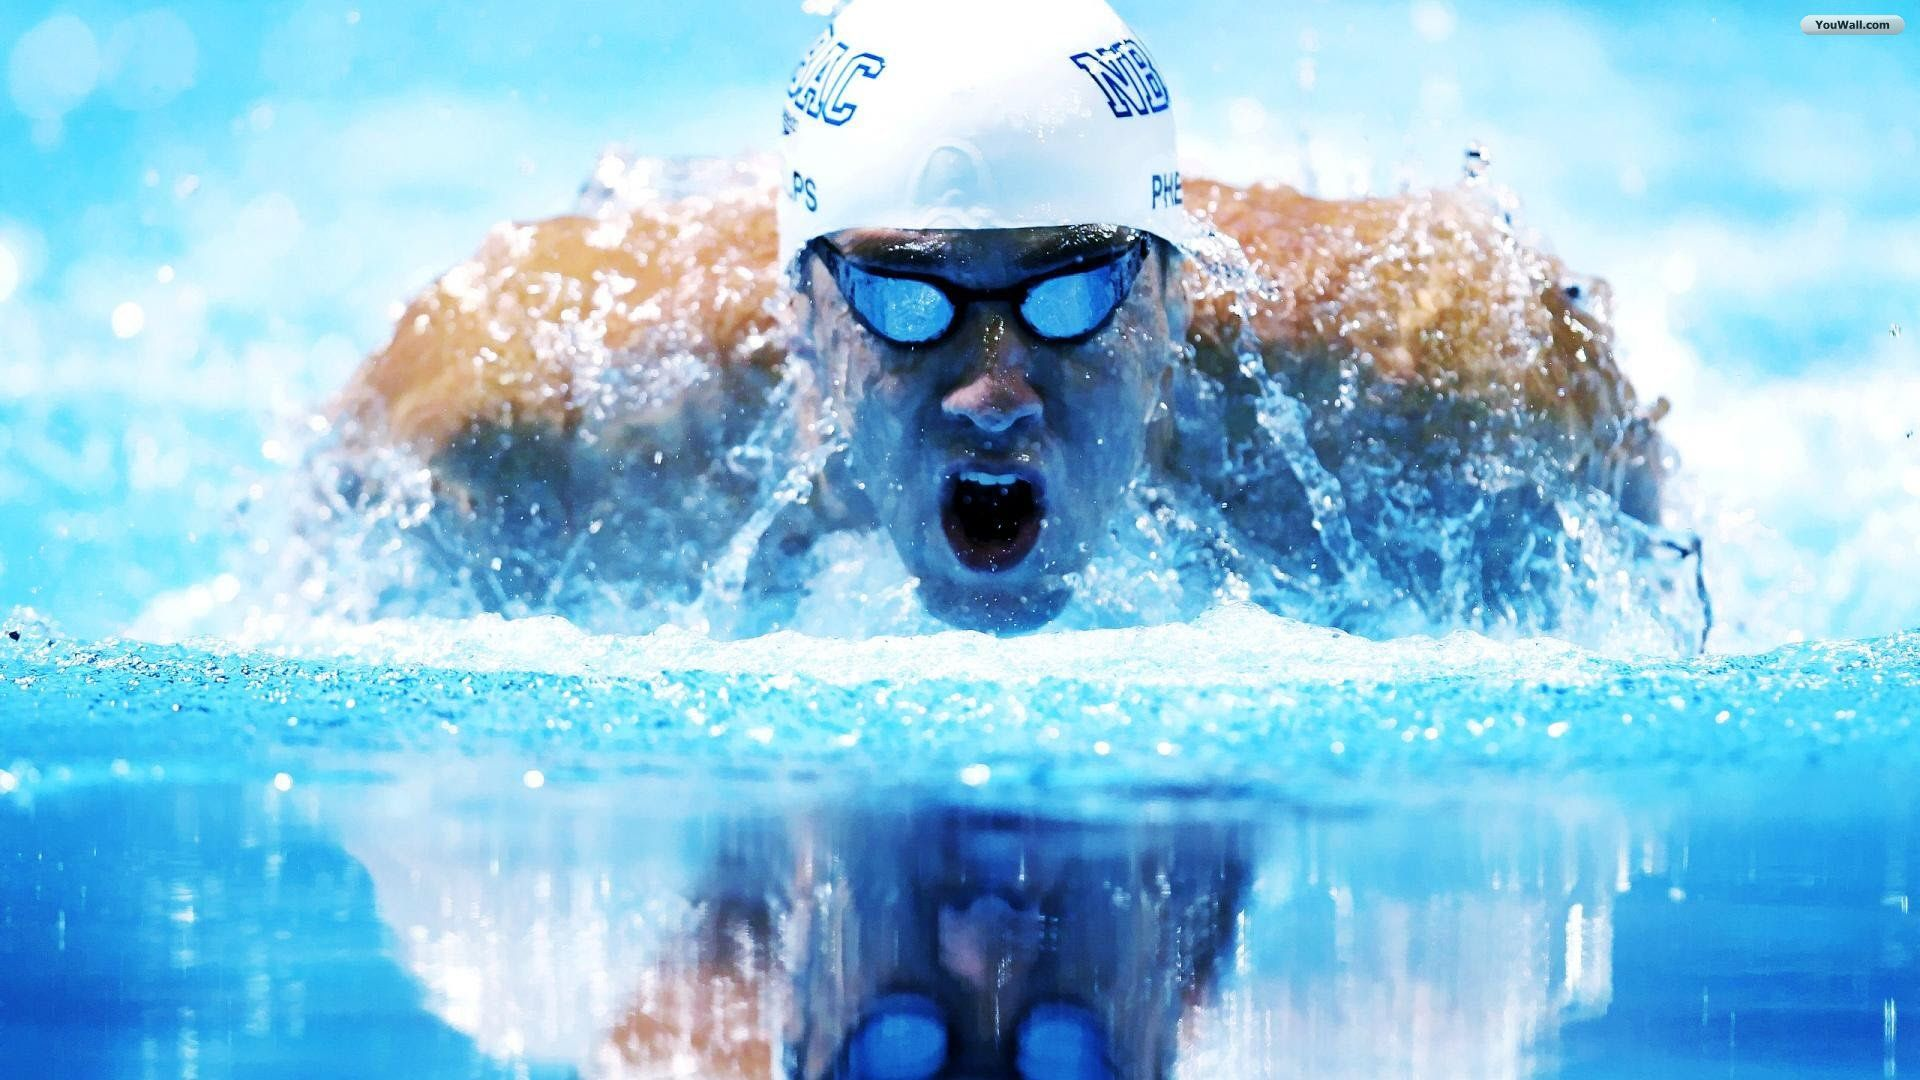 Awesome Michael Phelps HD Wallpaper Free Download